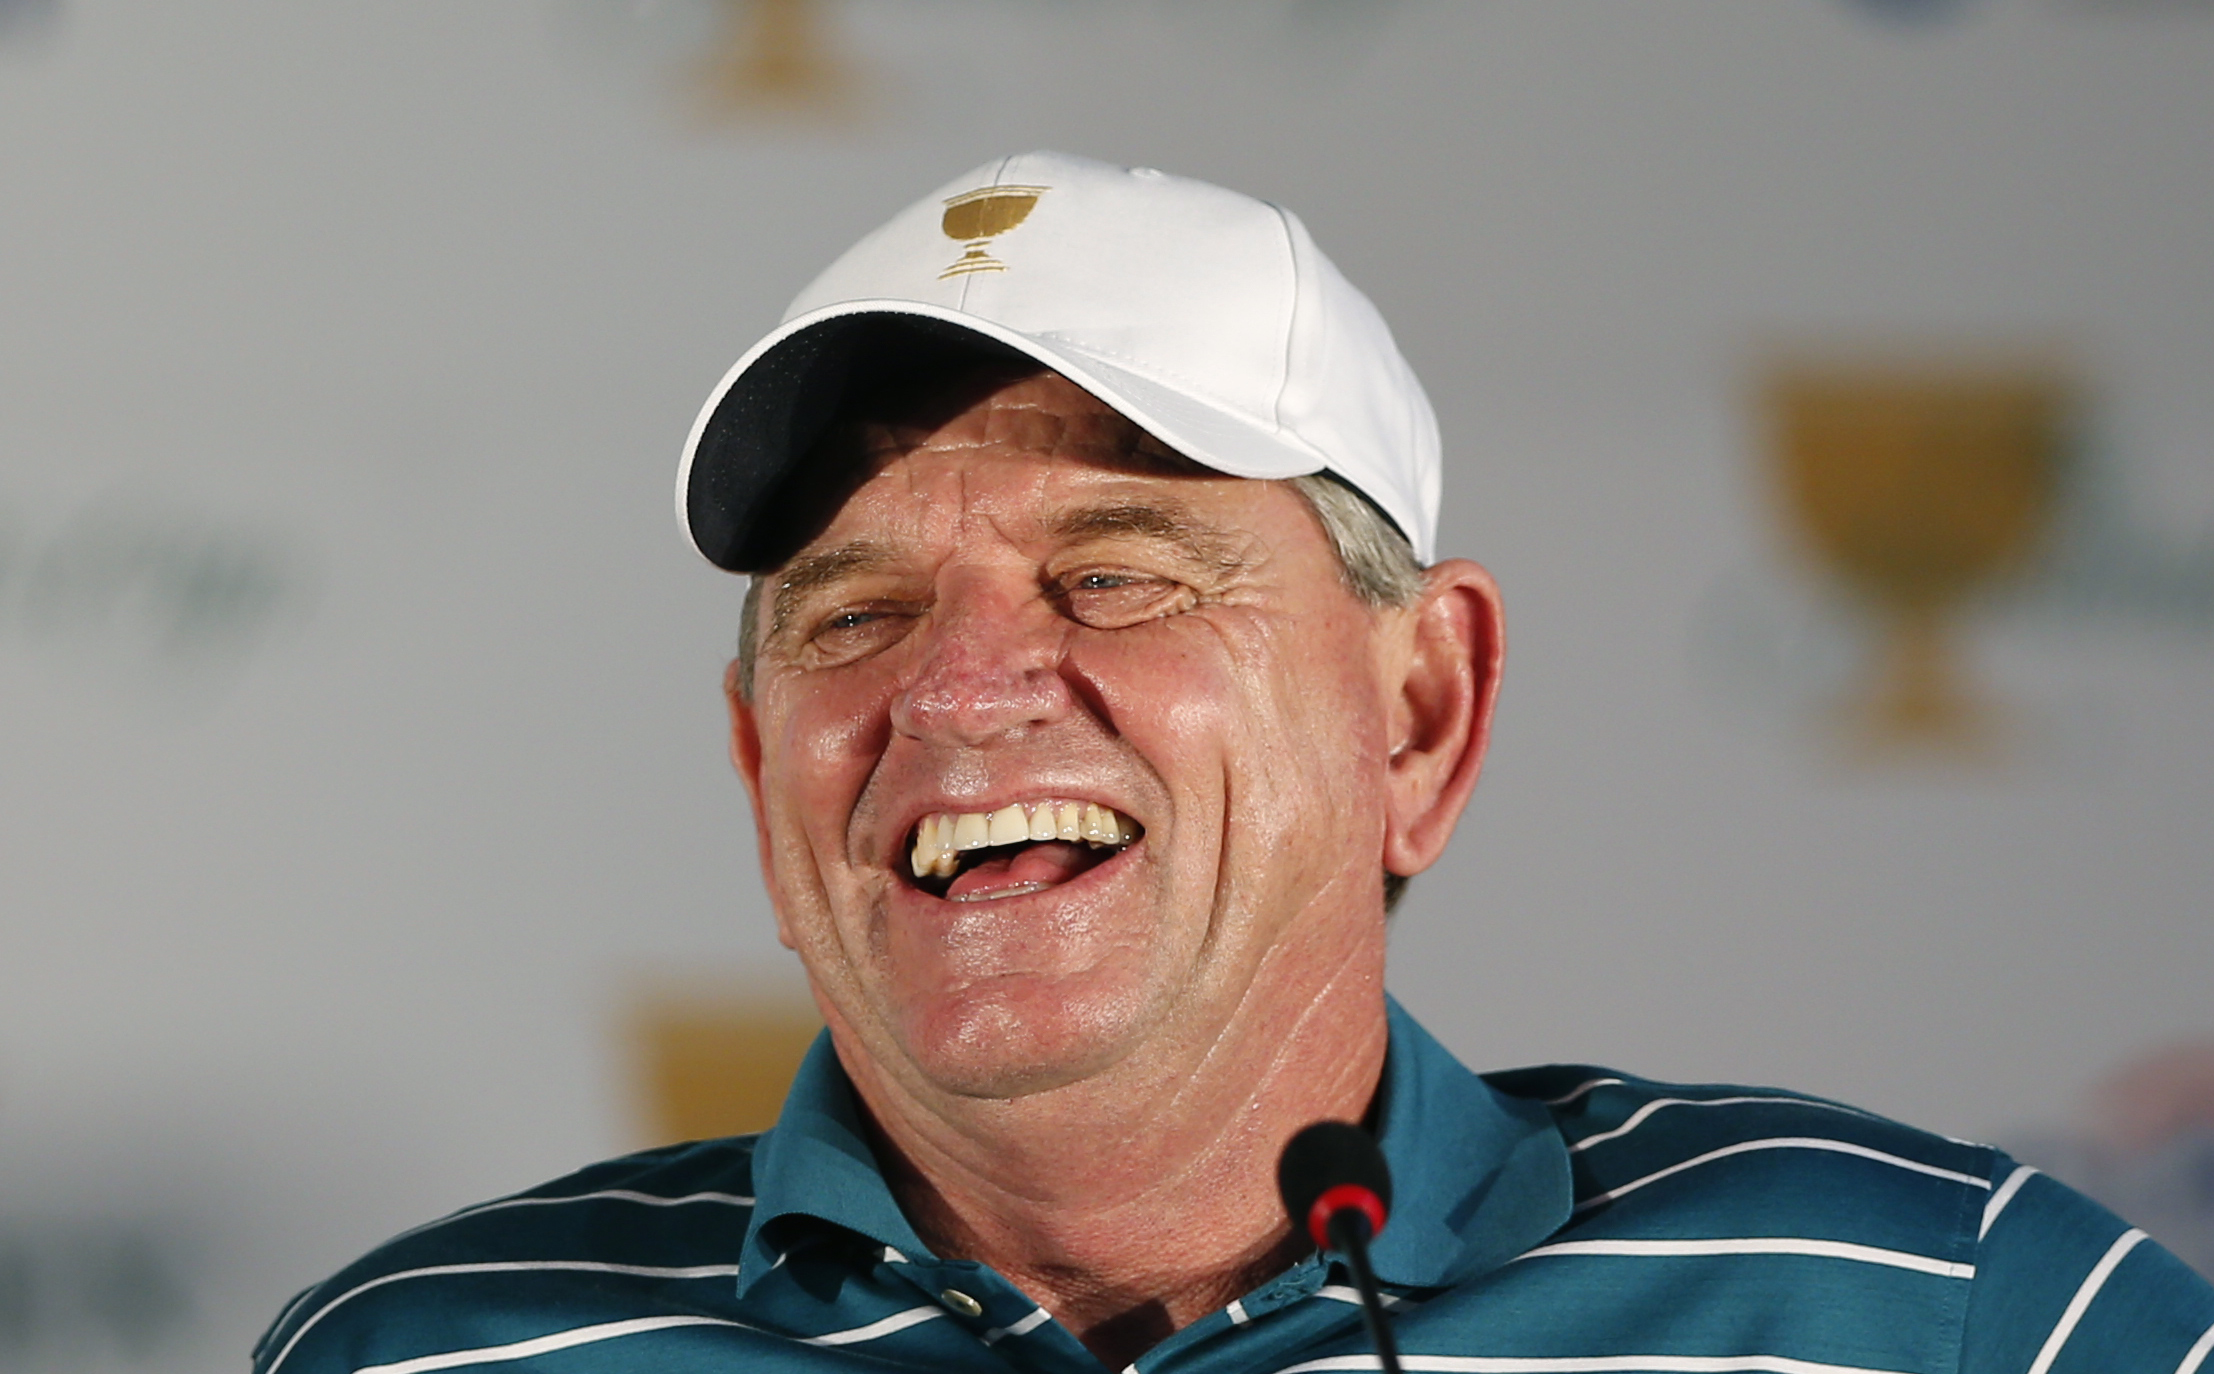 International team captain Nick Price smiles during a news conference ahead of the Presidents Cup golf tournament at Jack Nicklaus Golf Club Korea in Incheon, South Korea, Tuesday, Oct. 6, 2015. (AP Photo/Lee